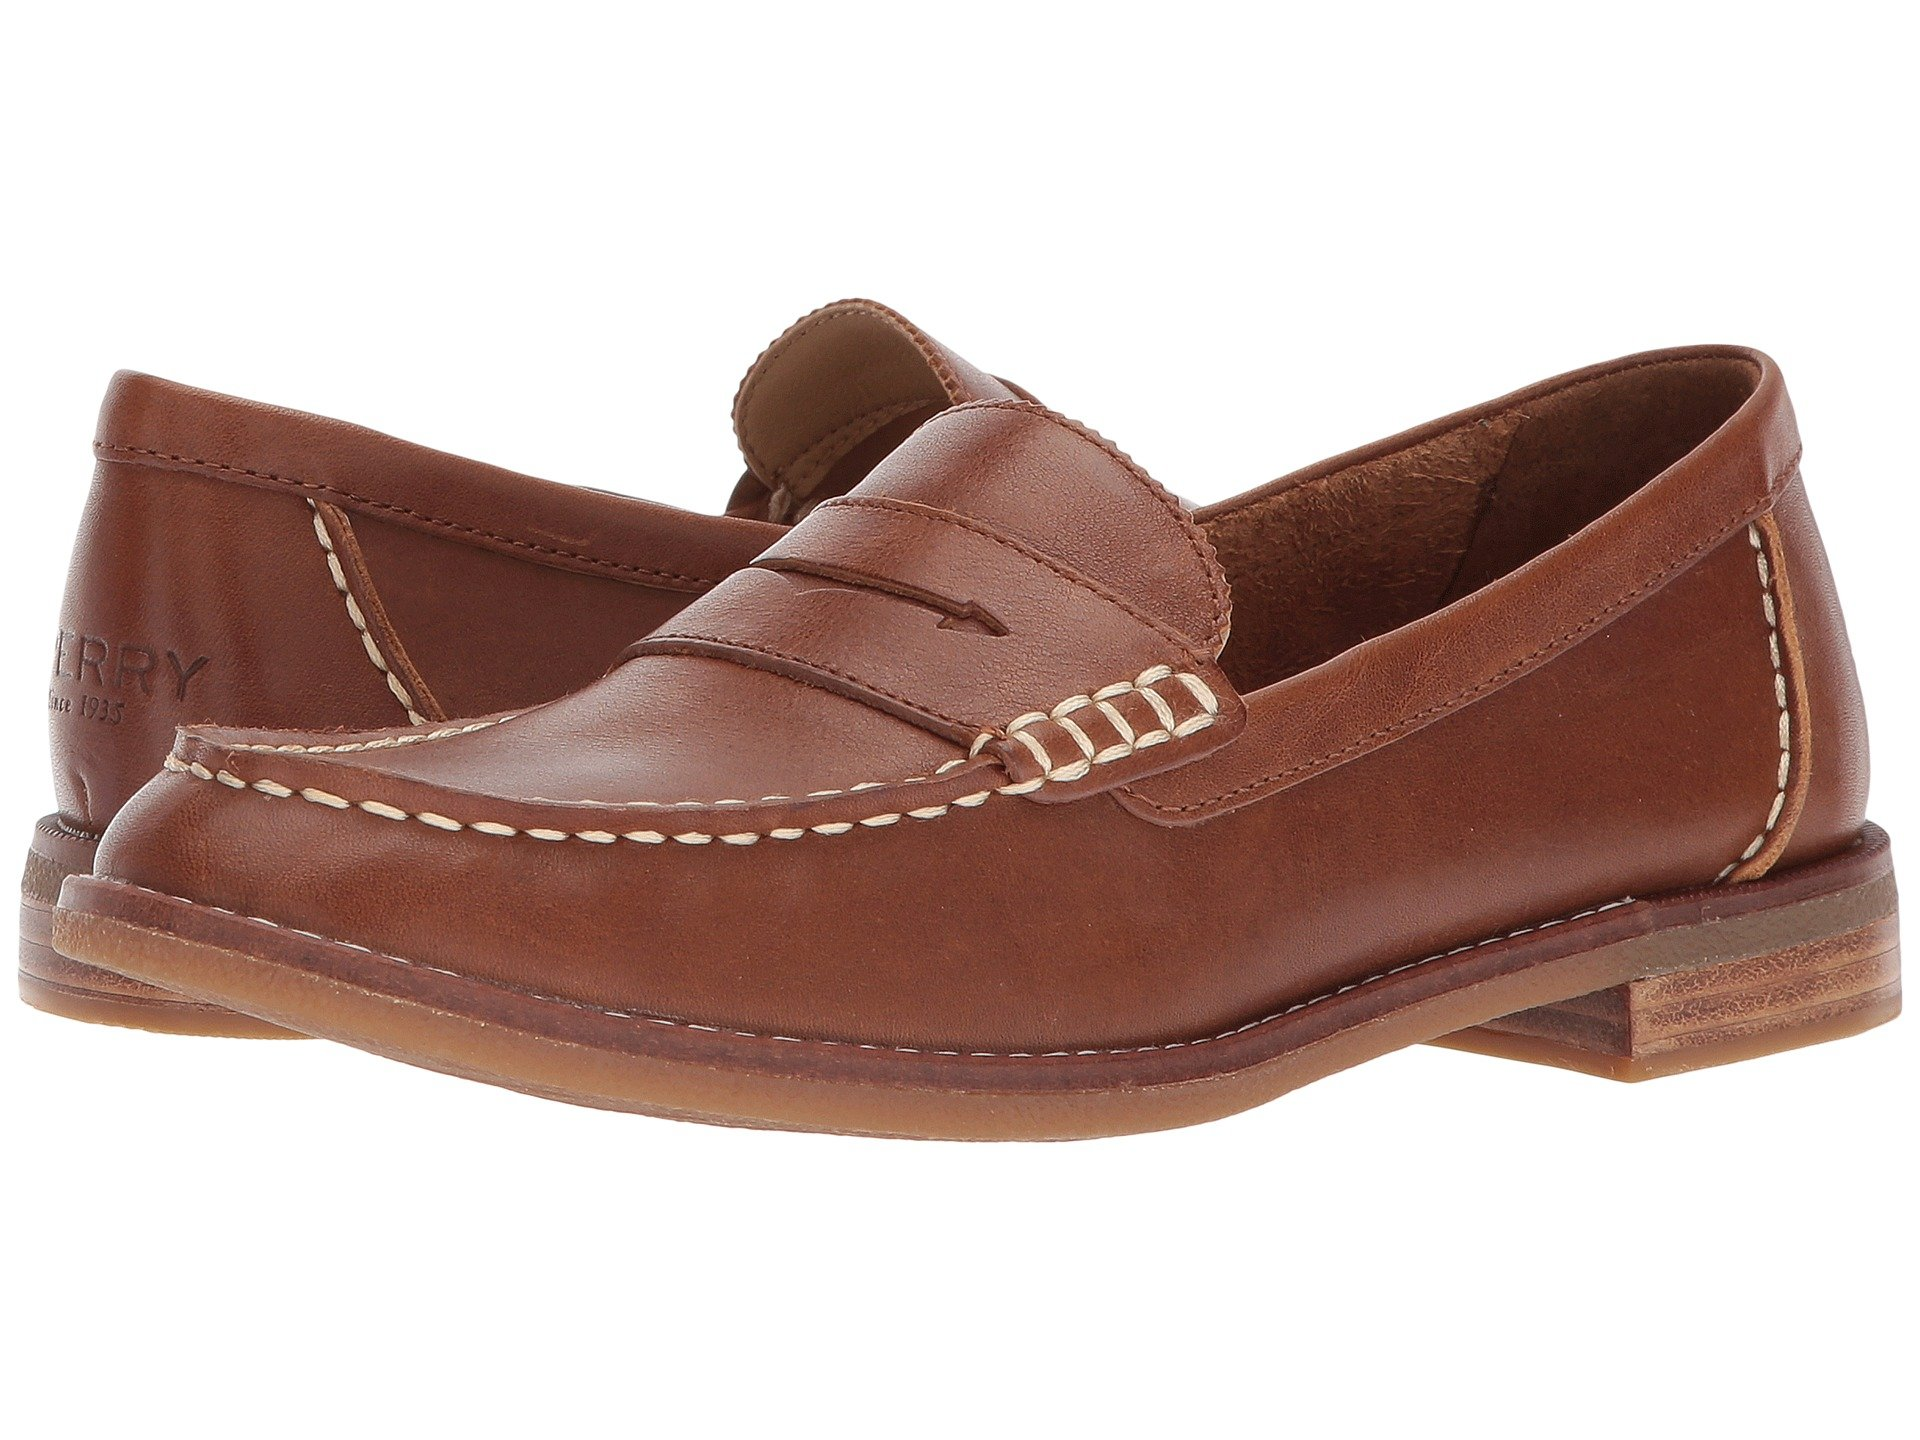 Shop Sperry Women's